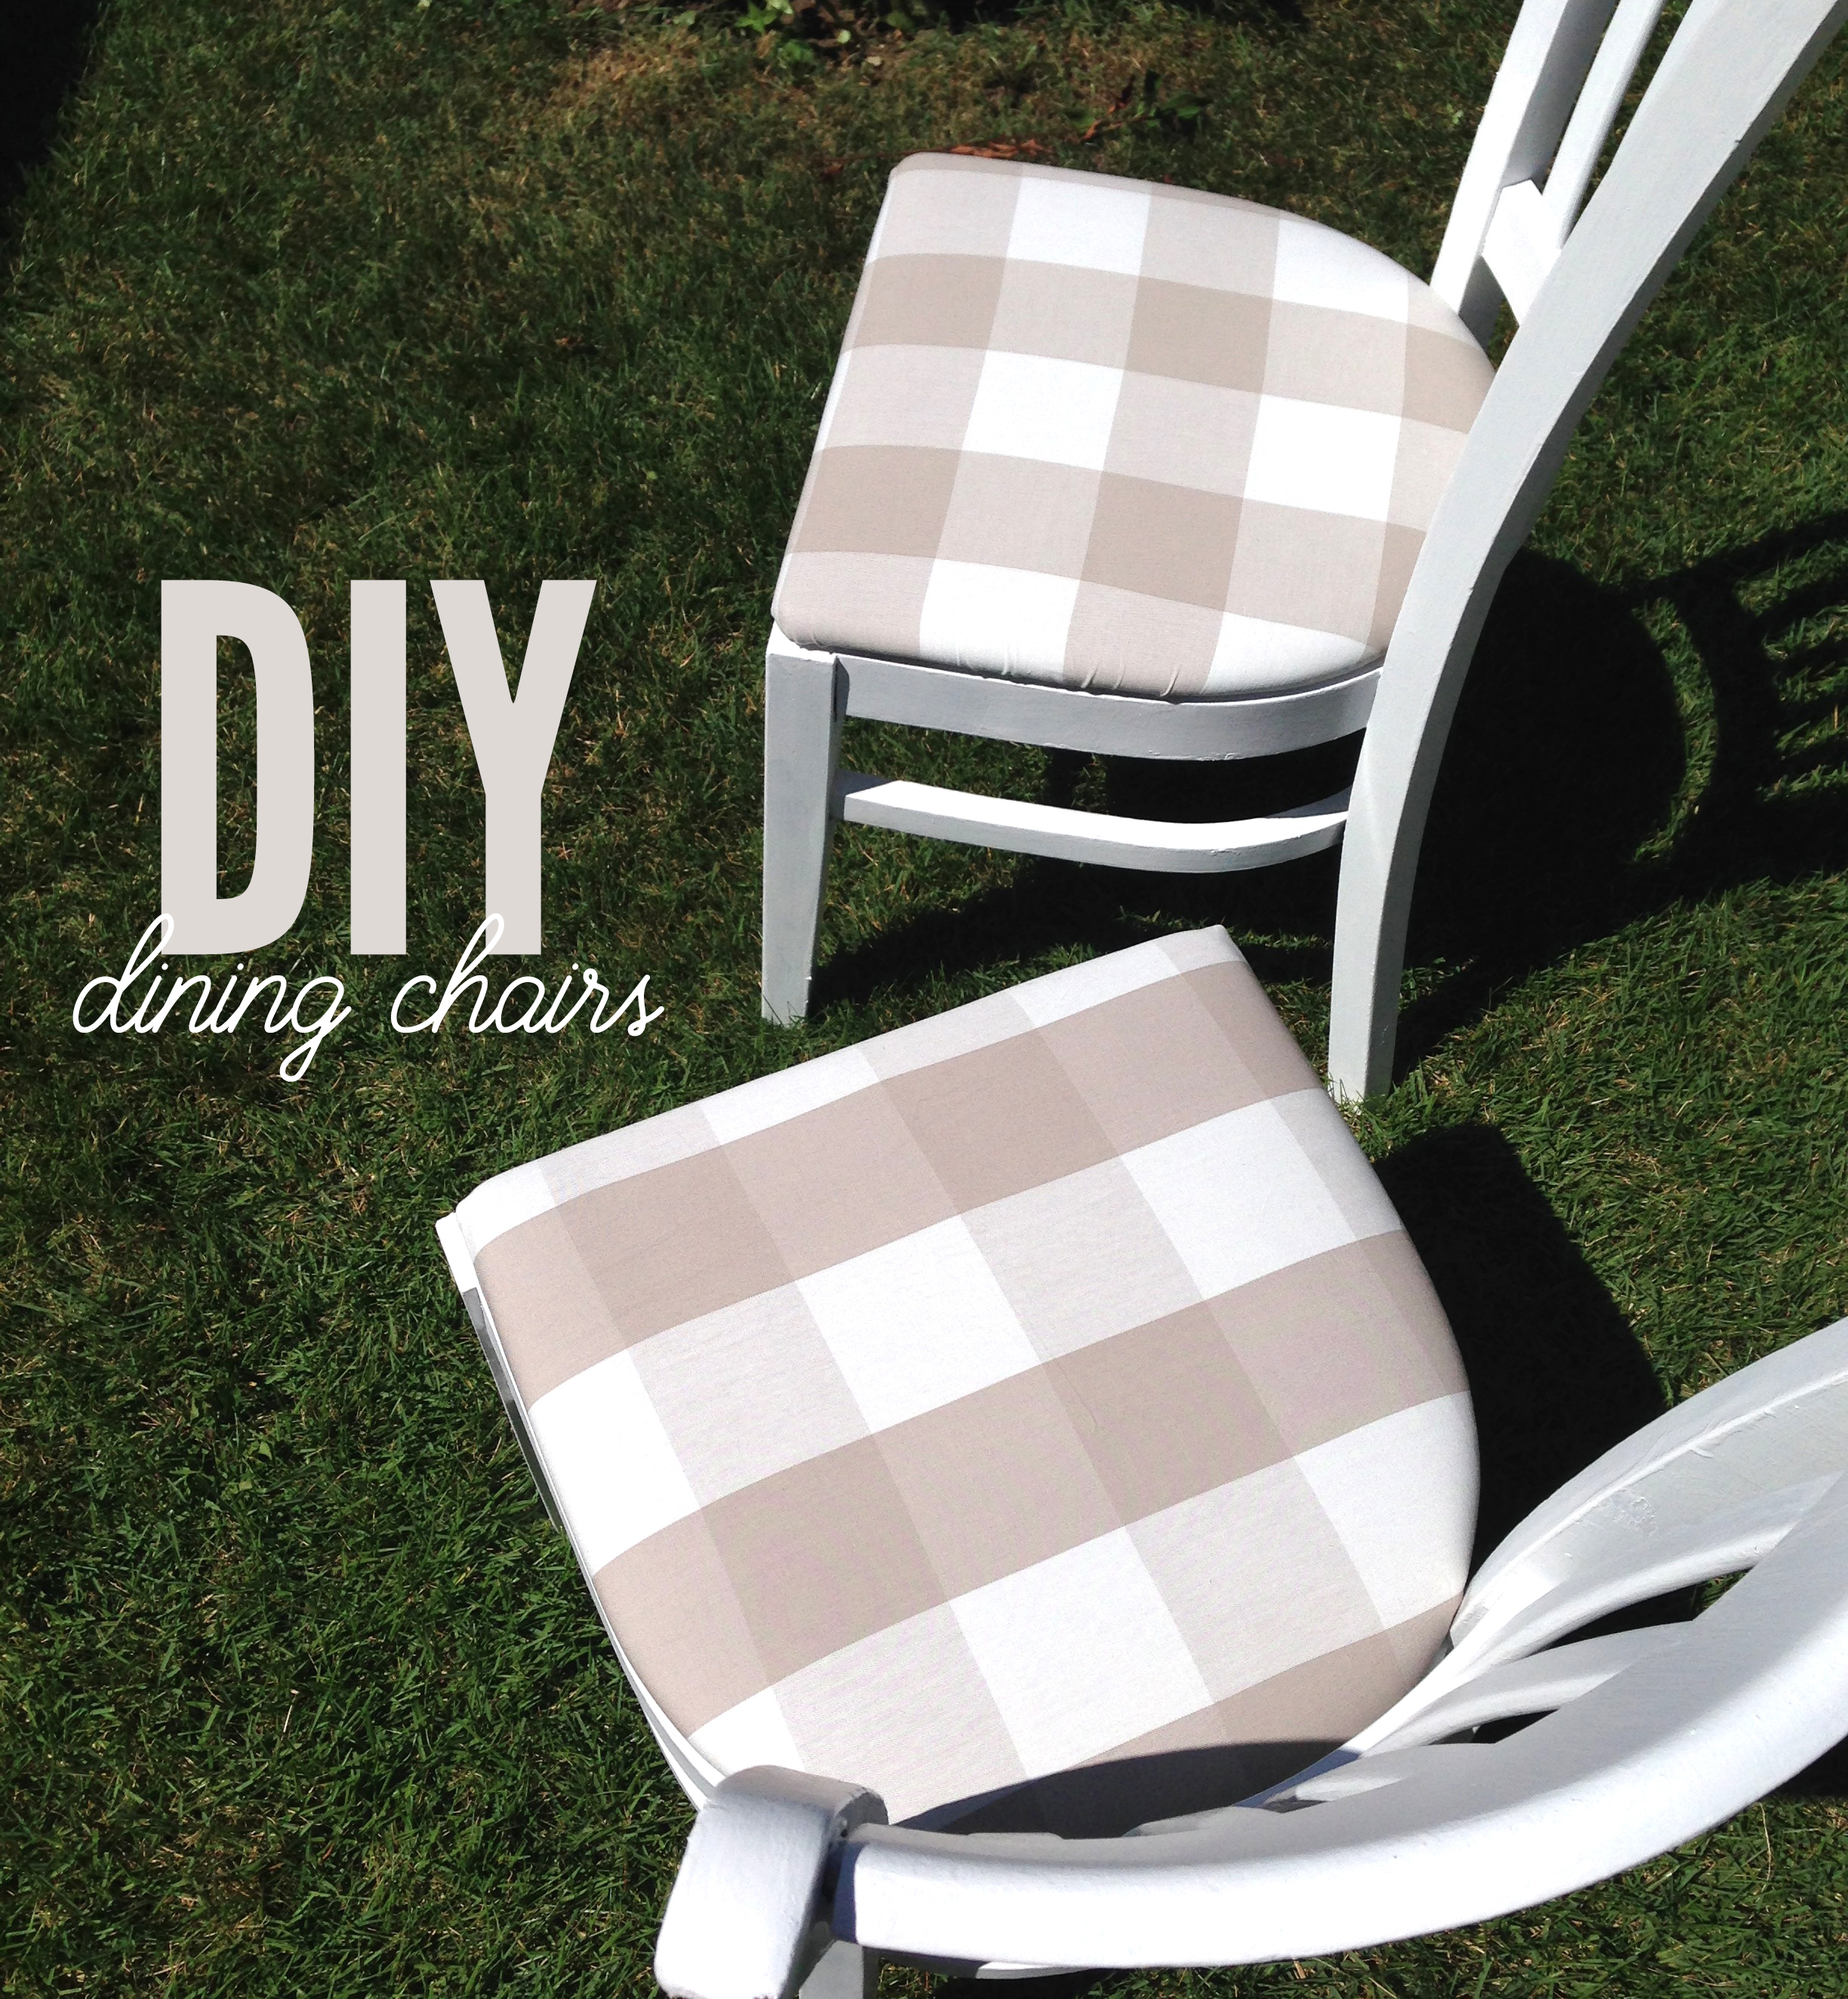 painted and reupholstered dining chairs - DIY home decor   Amanda Zampelli